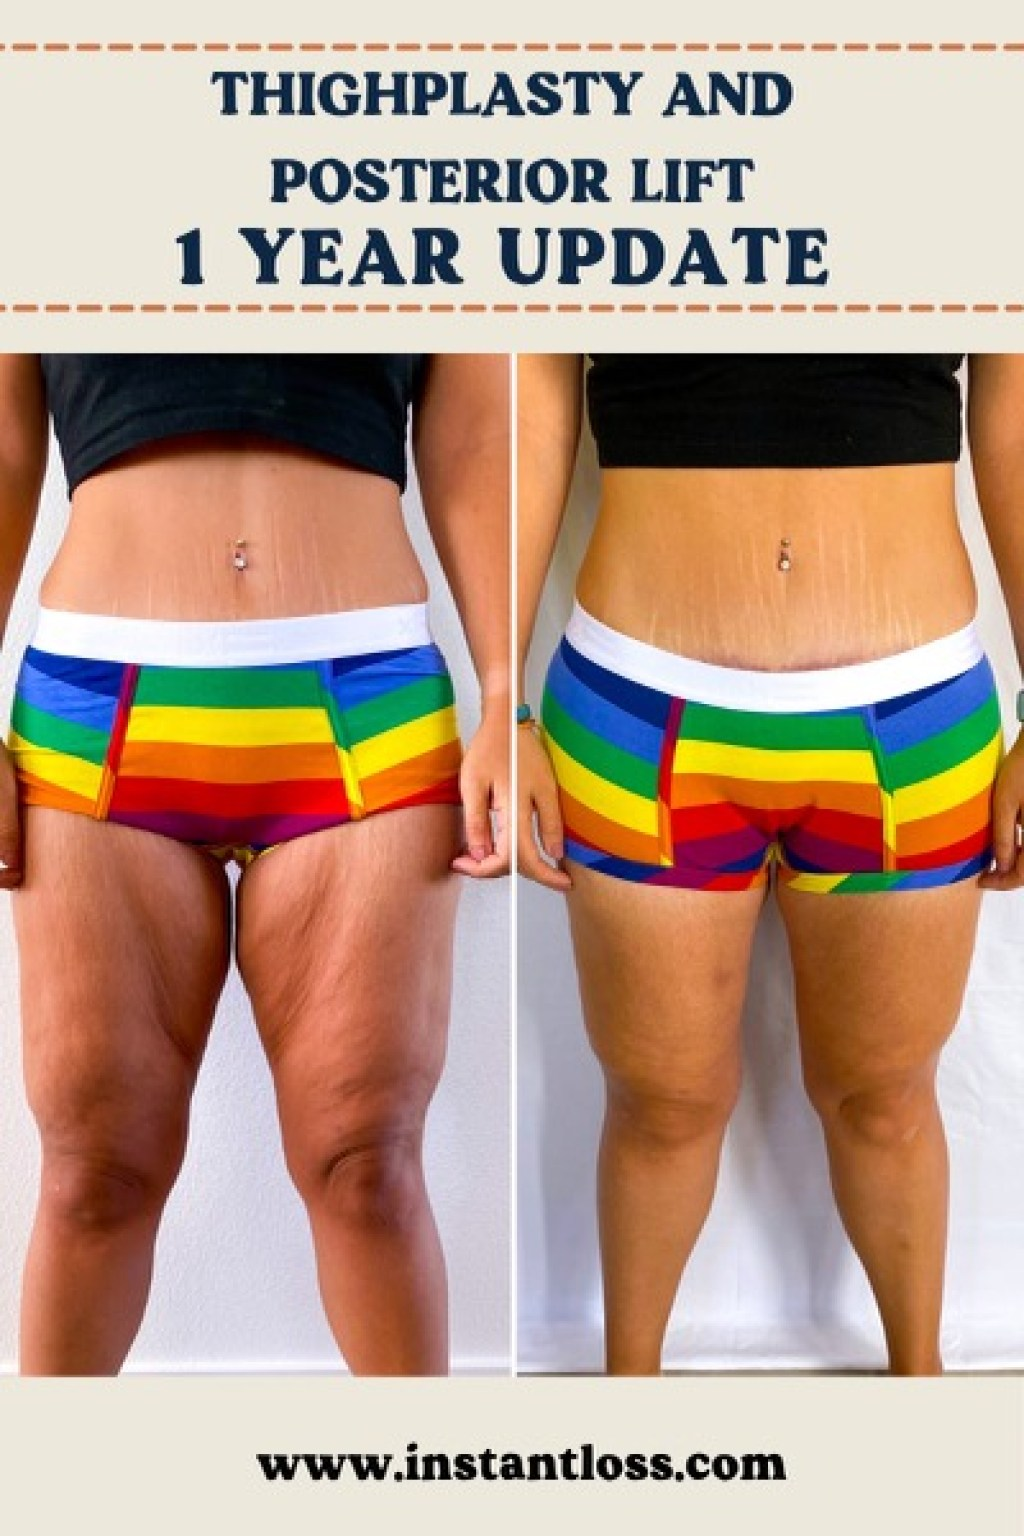 Thighplasty and Posterior Lift 1 Year Update instantloss.com